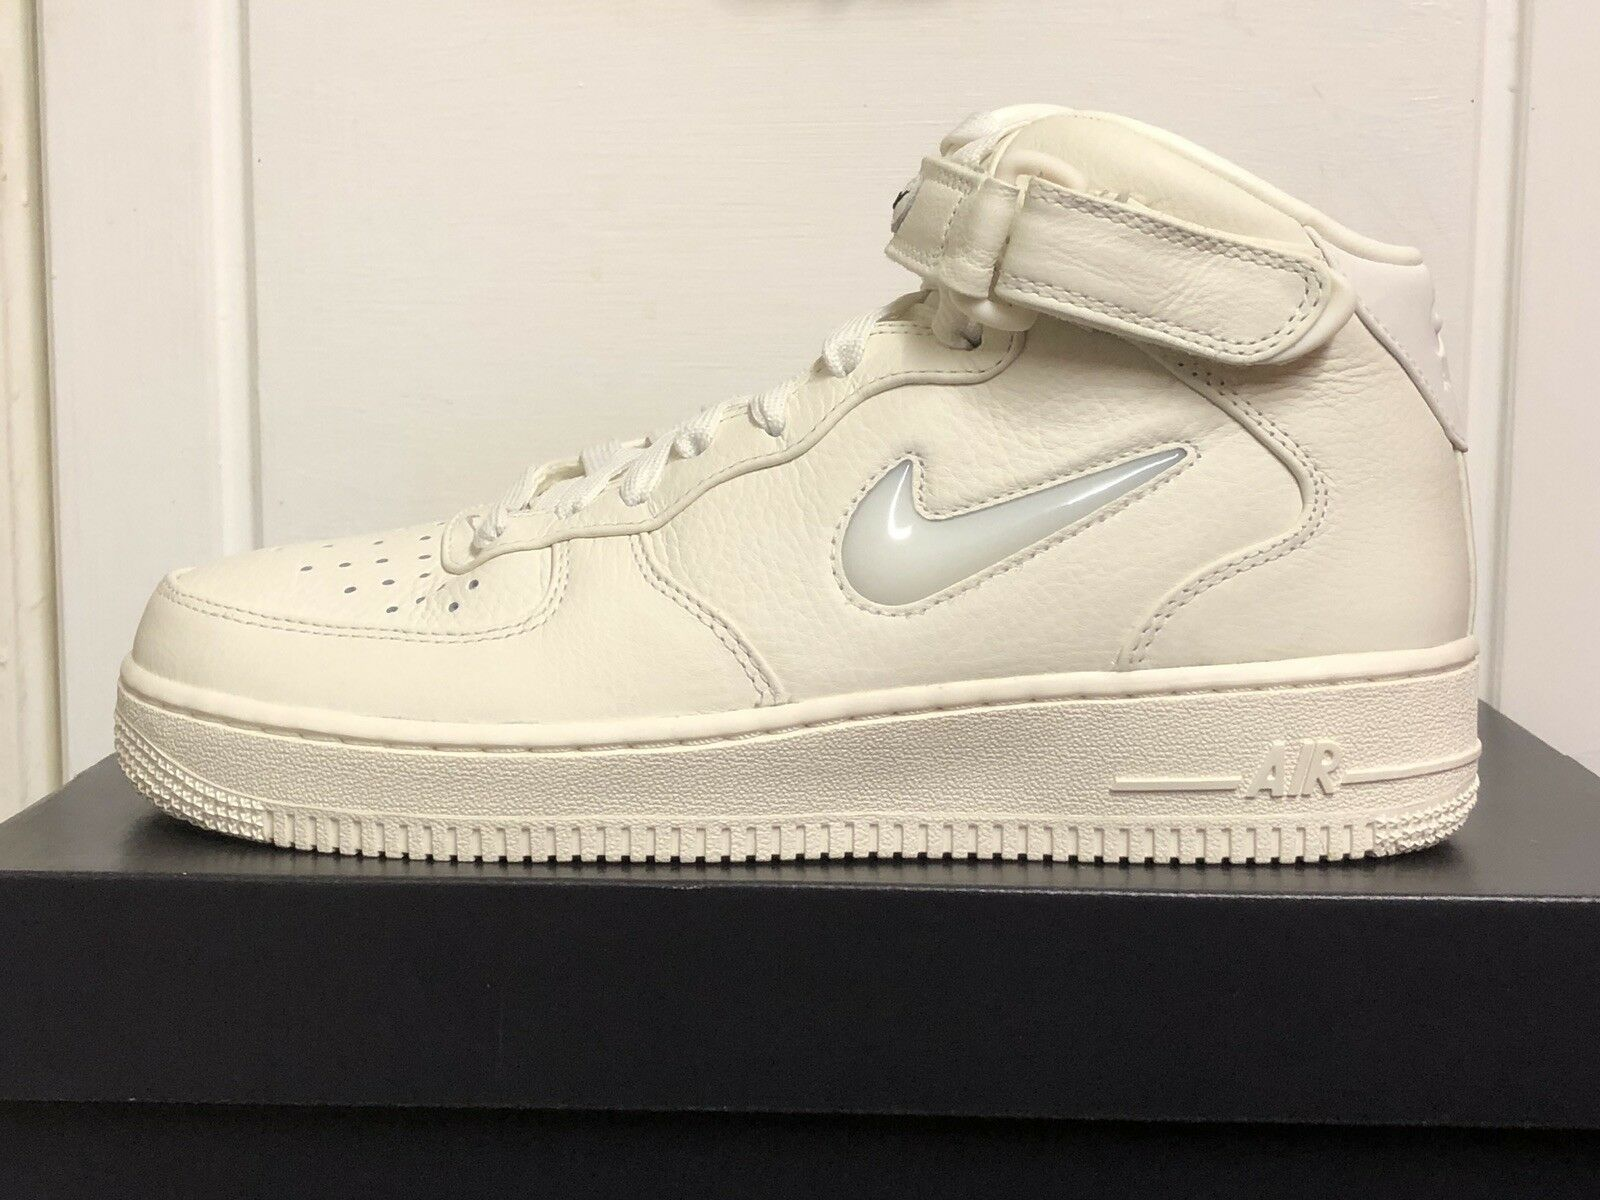 NIKE AIR FORCE 1 MID RETRO PRM JEWEL MENS TRAINERS SNEAKERS SHOES